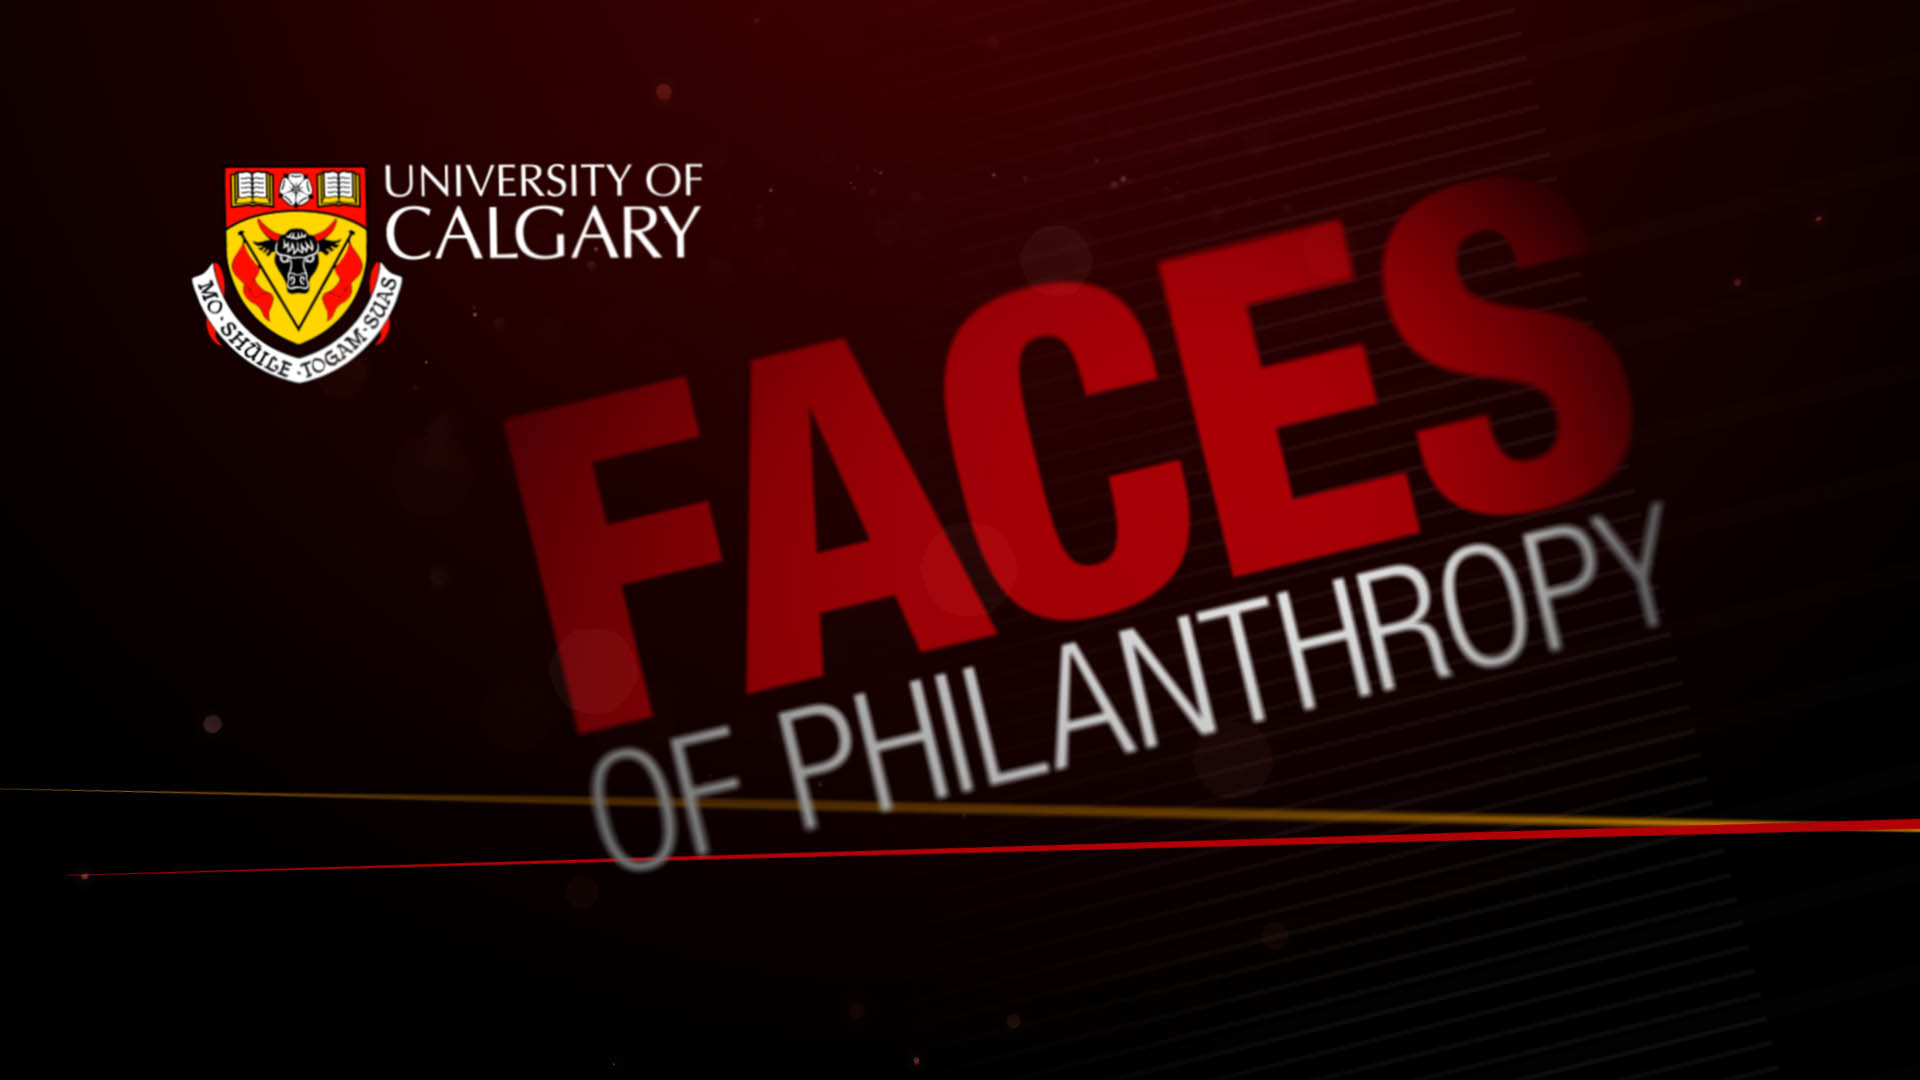 Faces of Philanthropy – University of Calgary